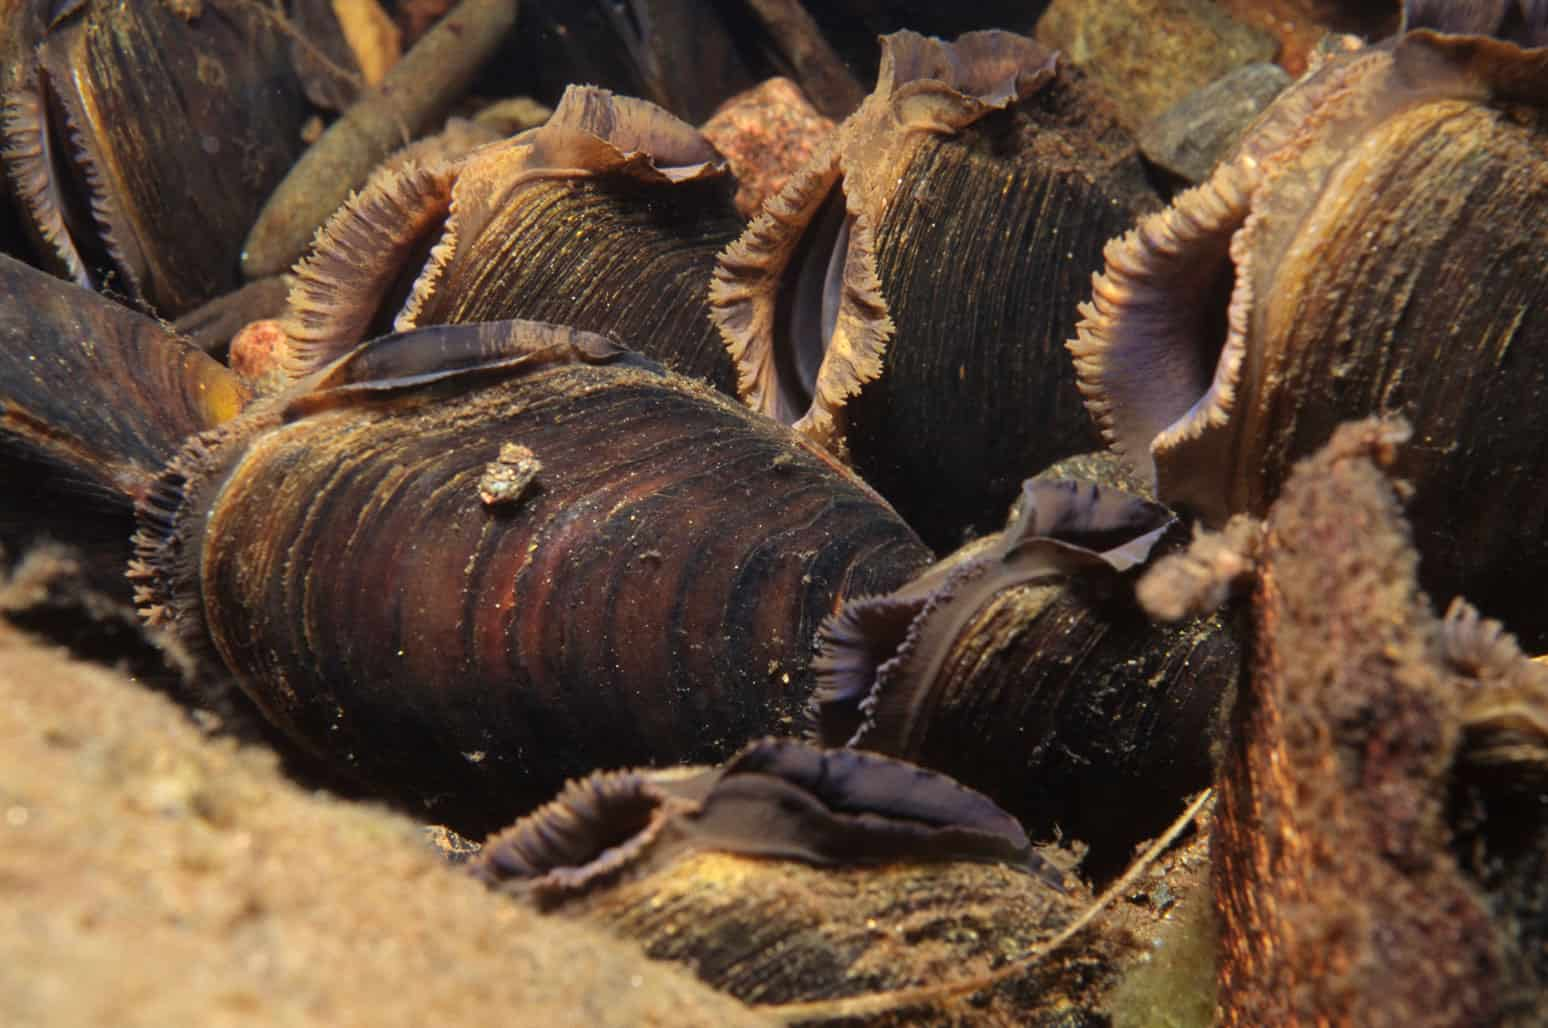 New insights into the life of Freshwater pearl mussels